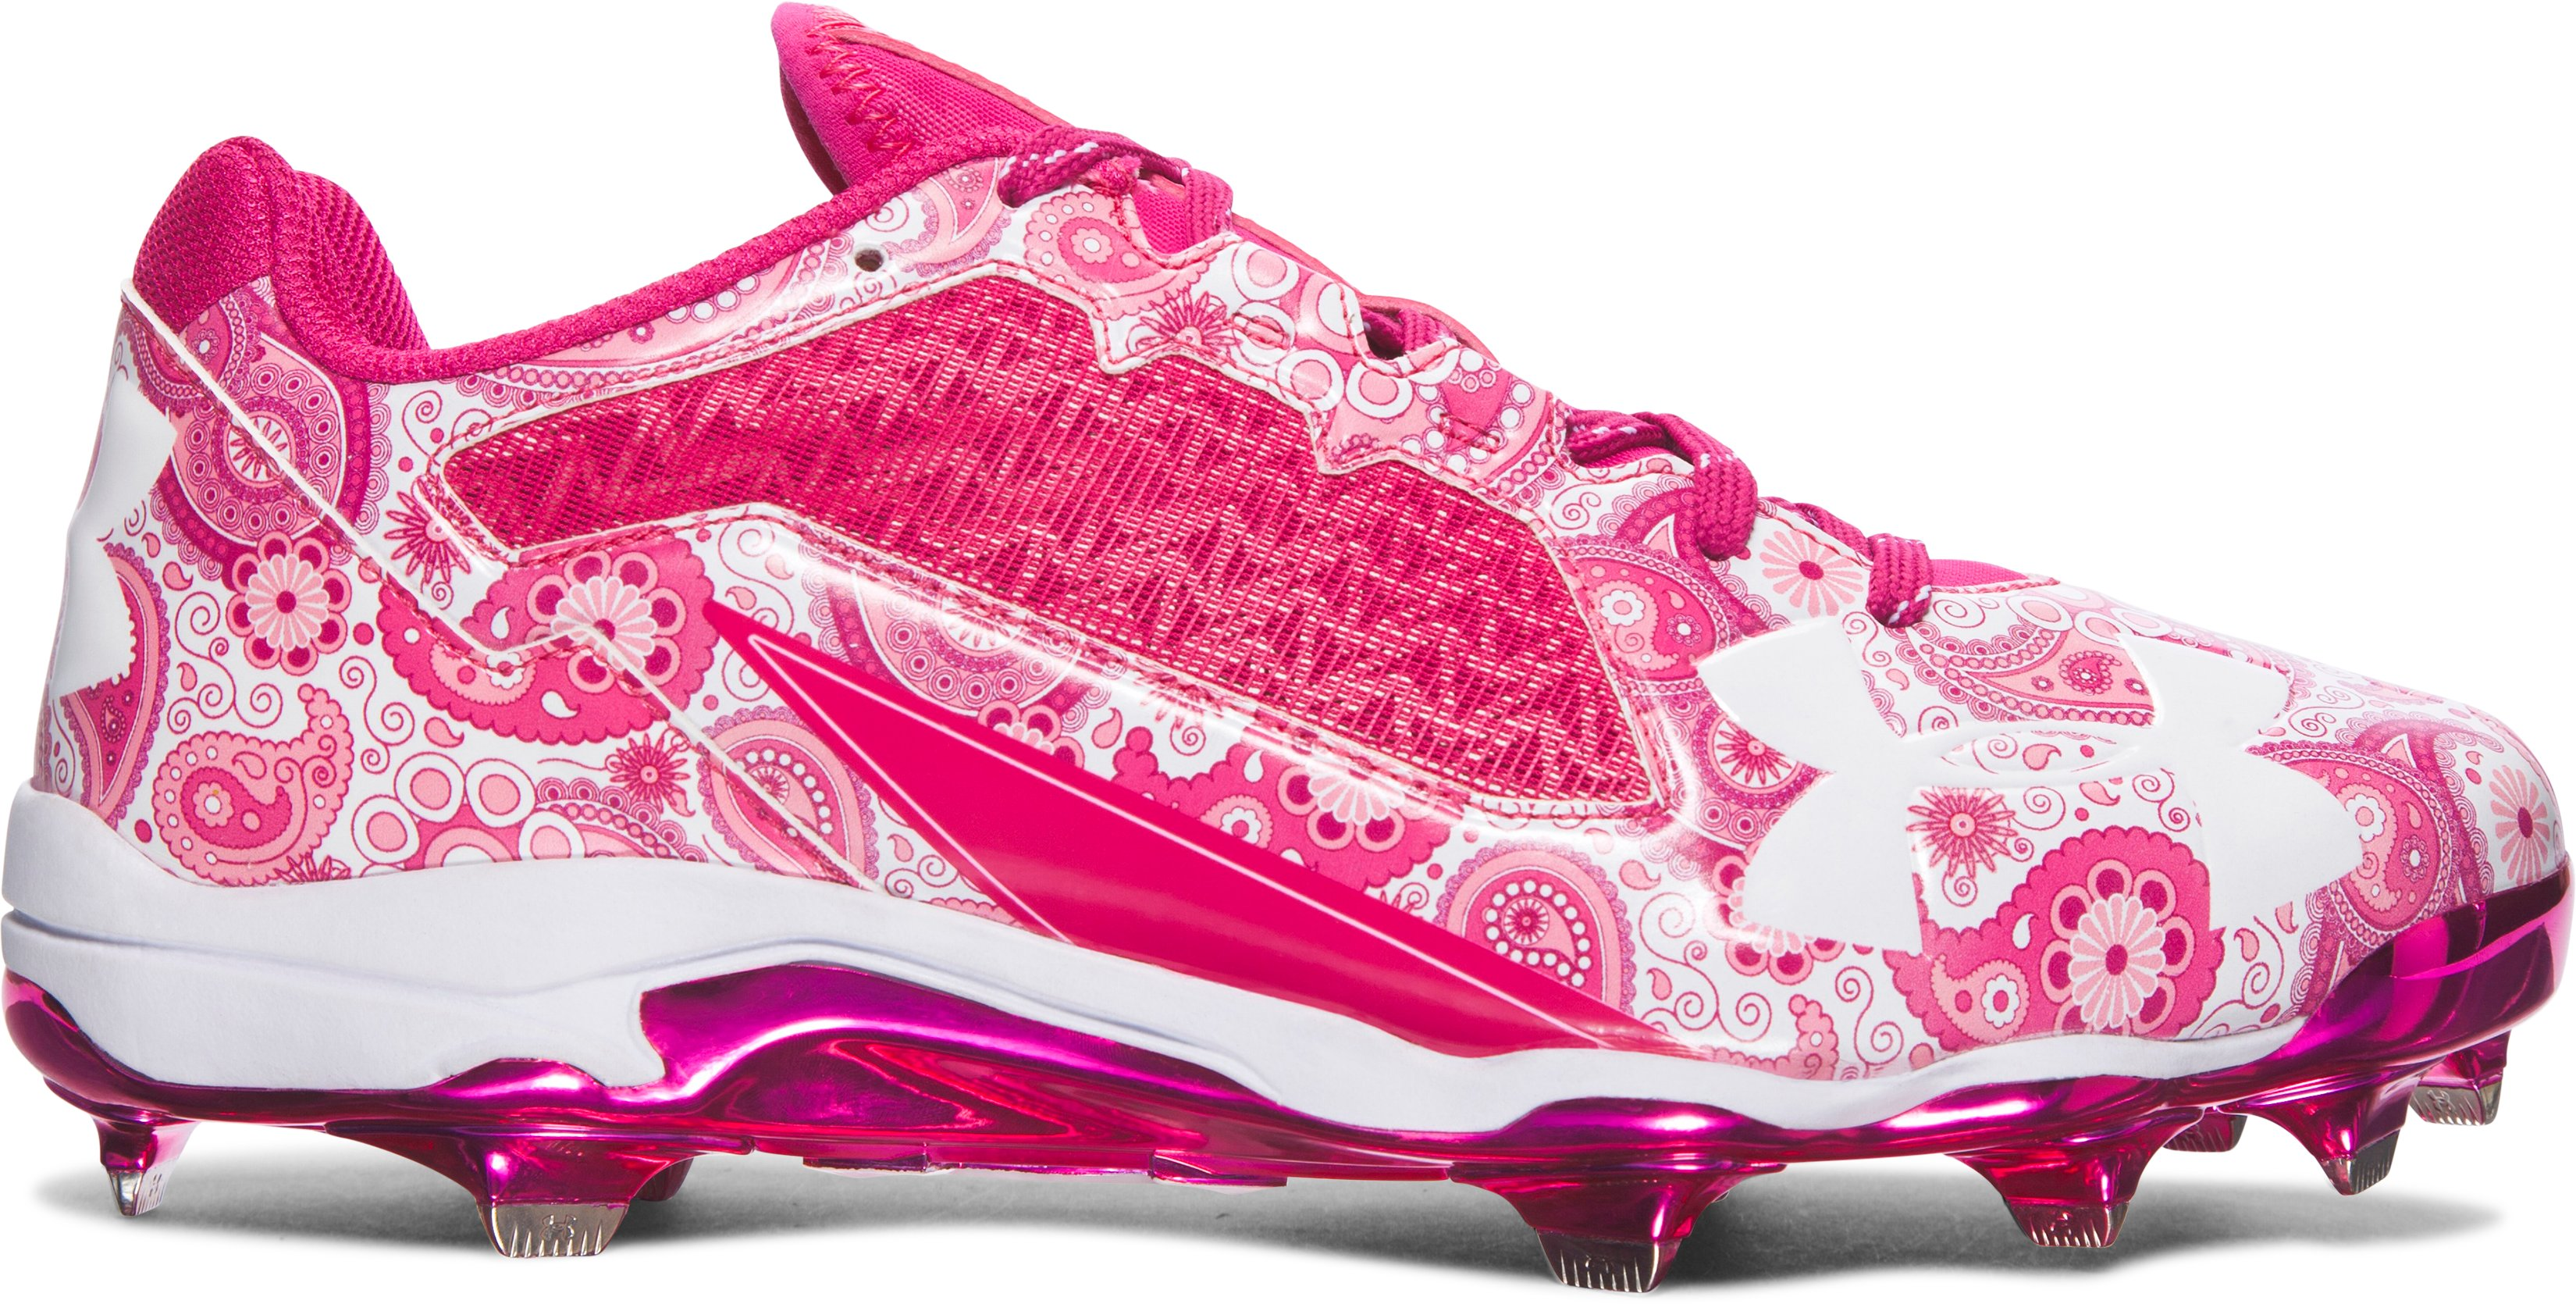 Men's UA Mother's Day Edition DiamondTips Baseball Cleats, Tropic Pink